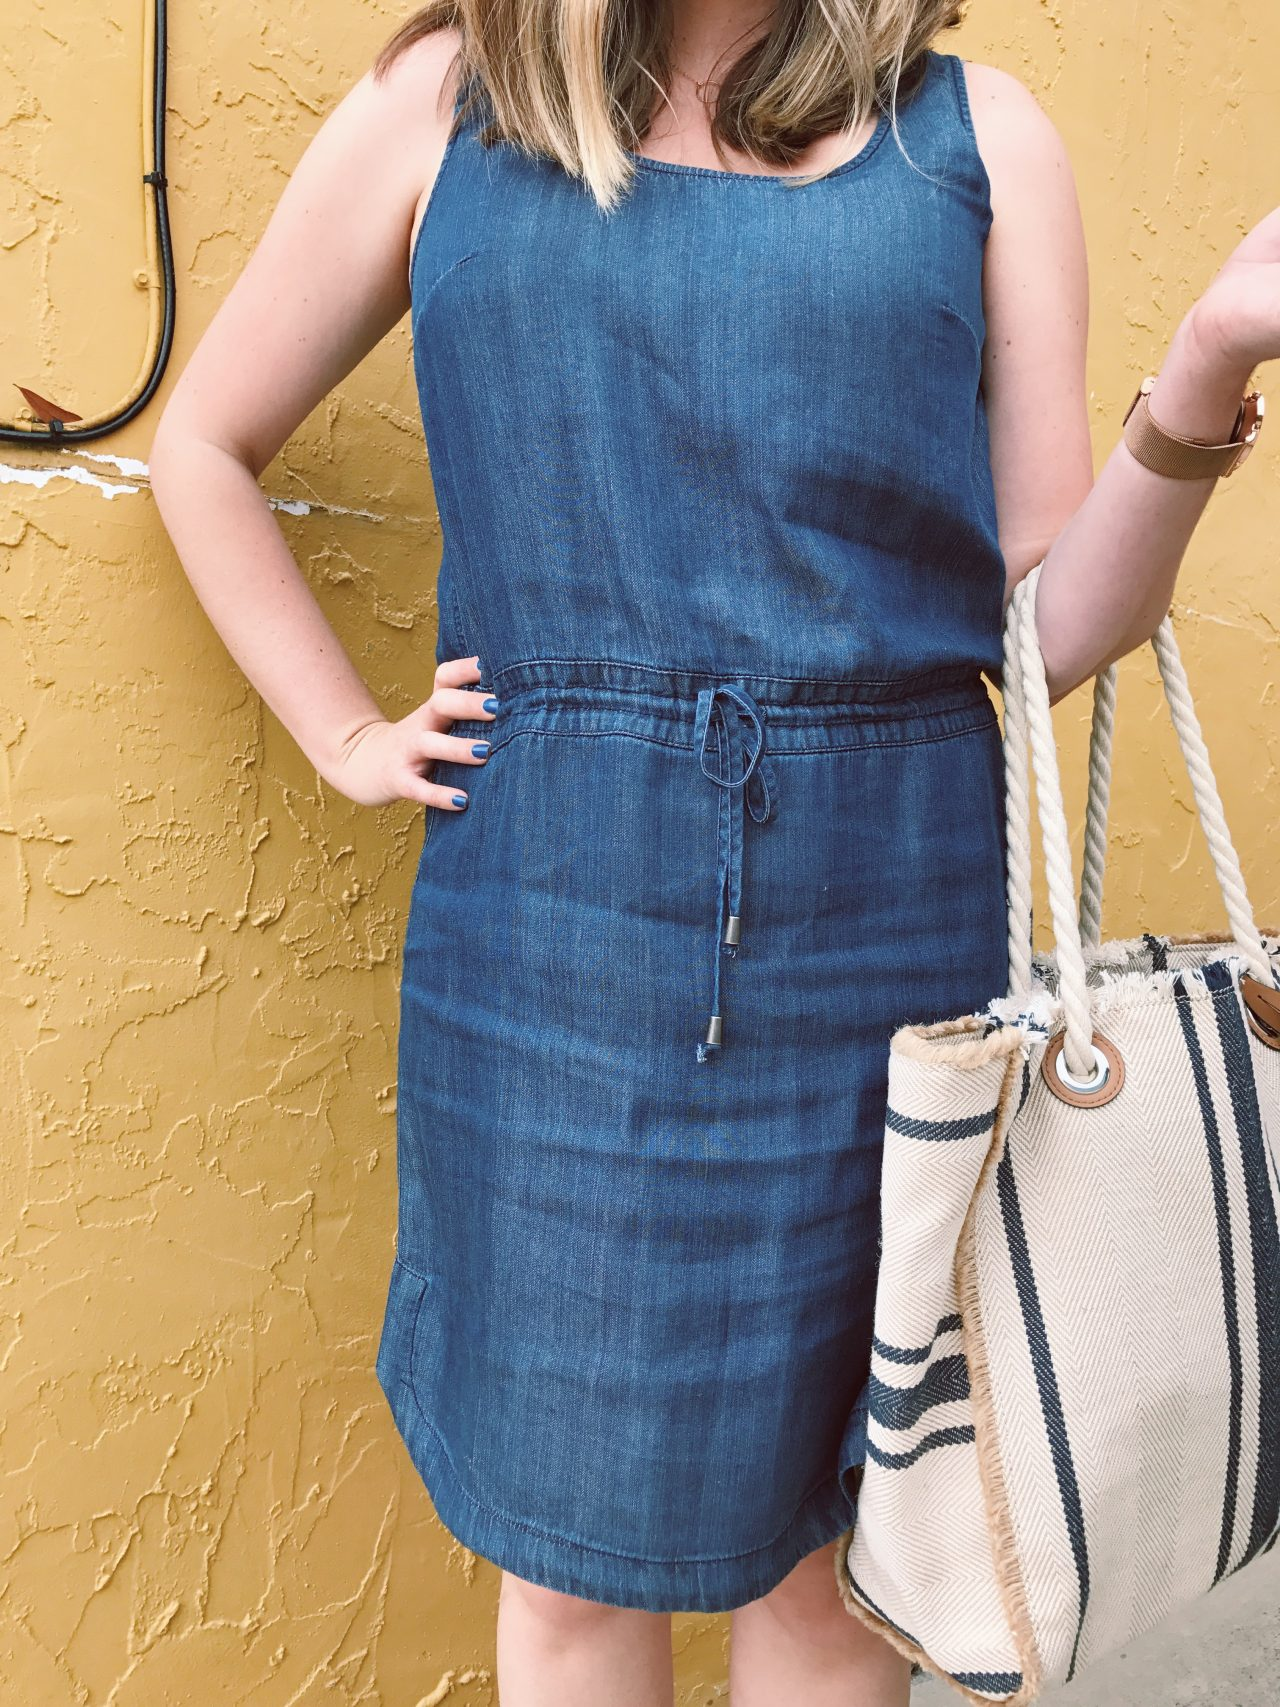 Olive and Oak Sleeveless Denim Dress, Vince Camuto Ulla Striped Summer Tote, Outfit Ideas, Casual Summer Style, Women's Fashion